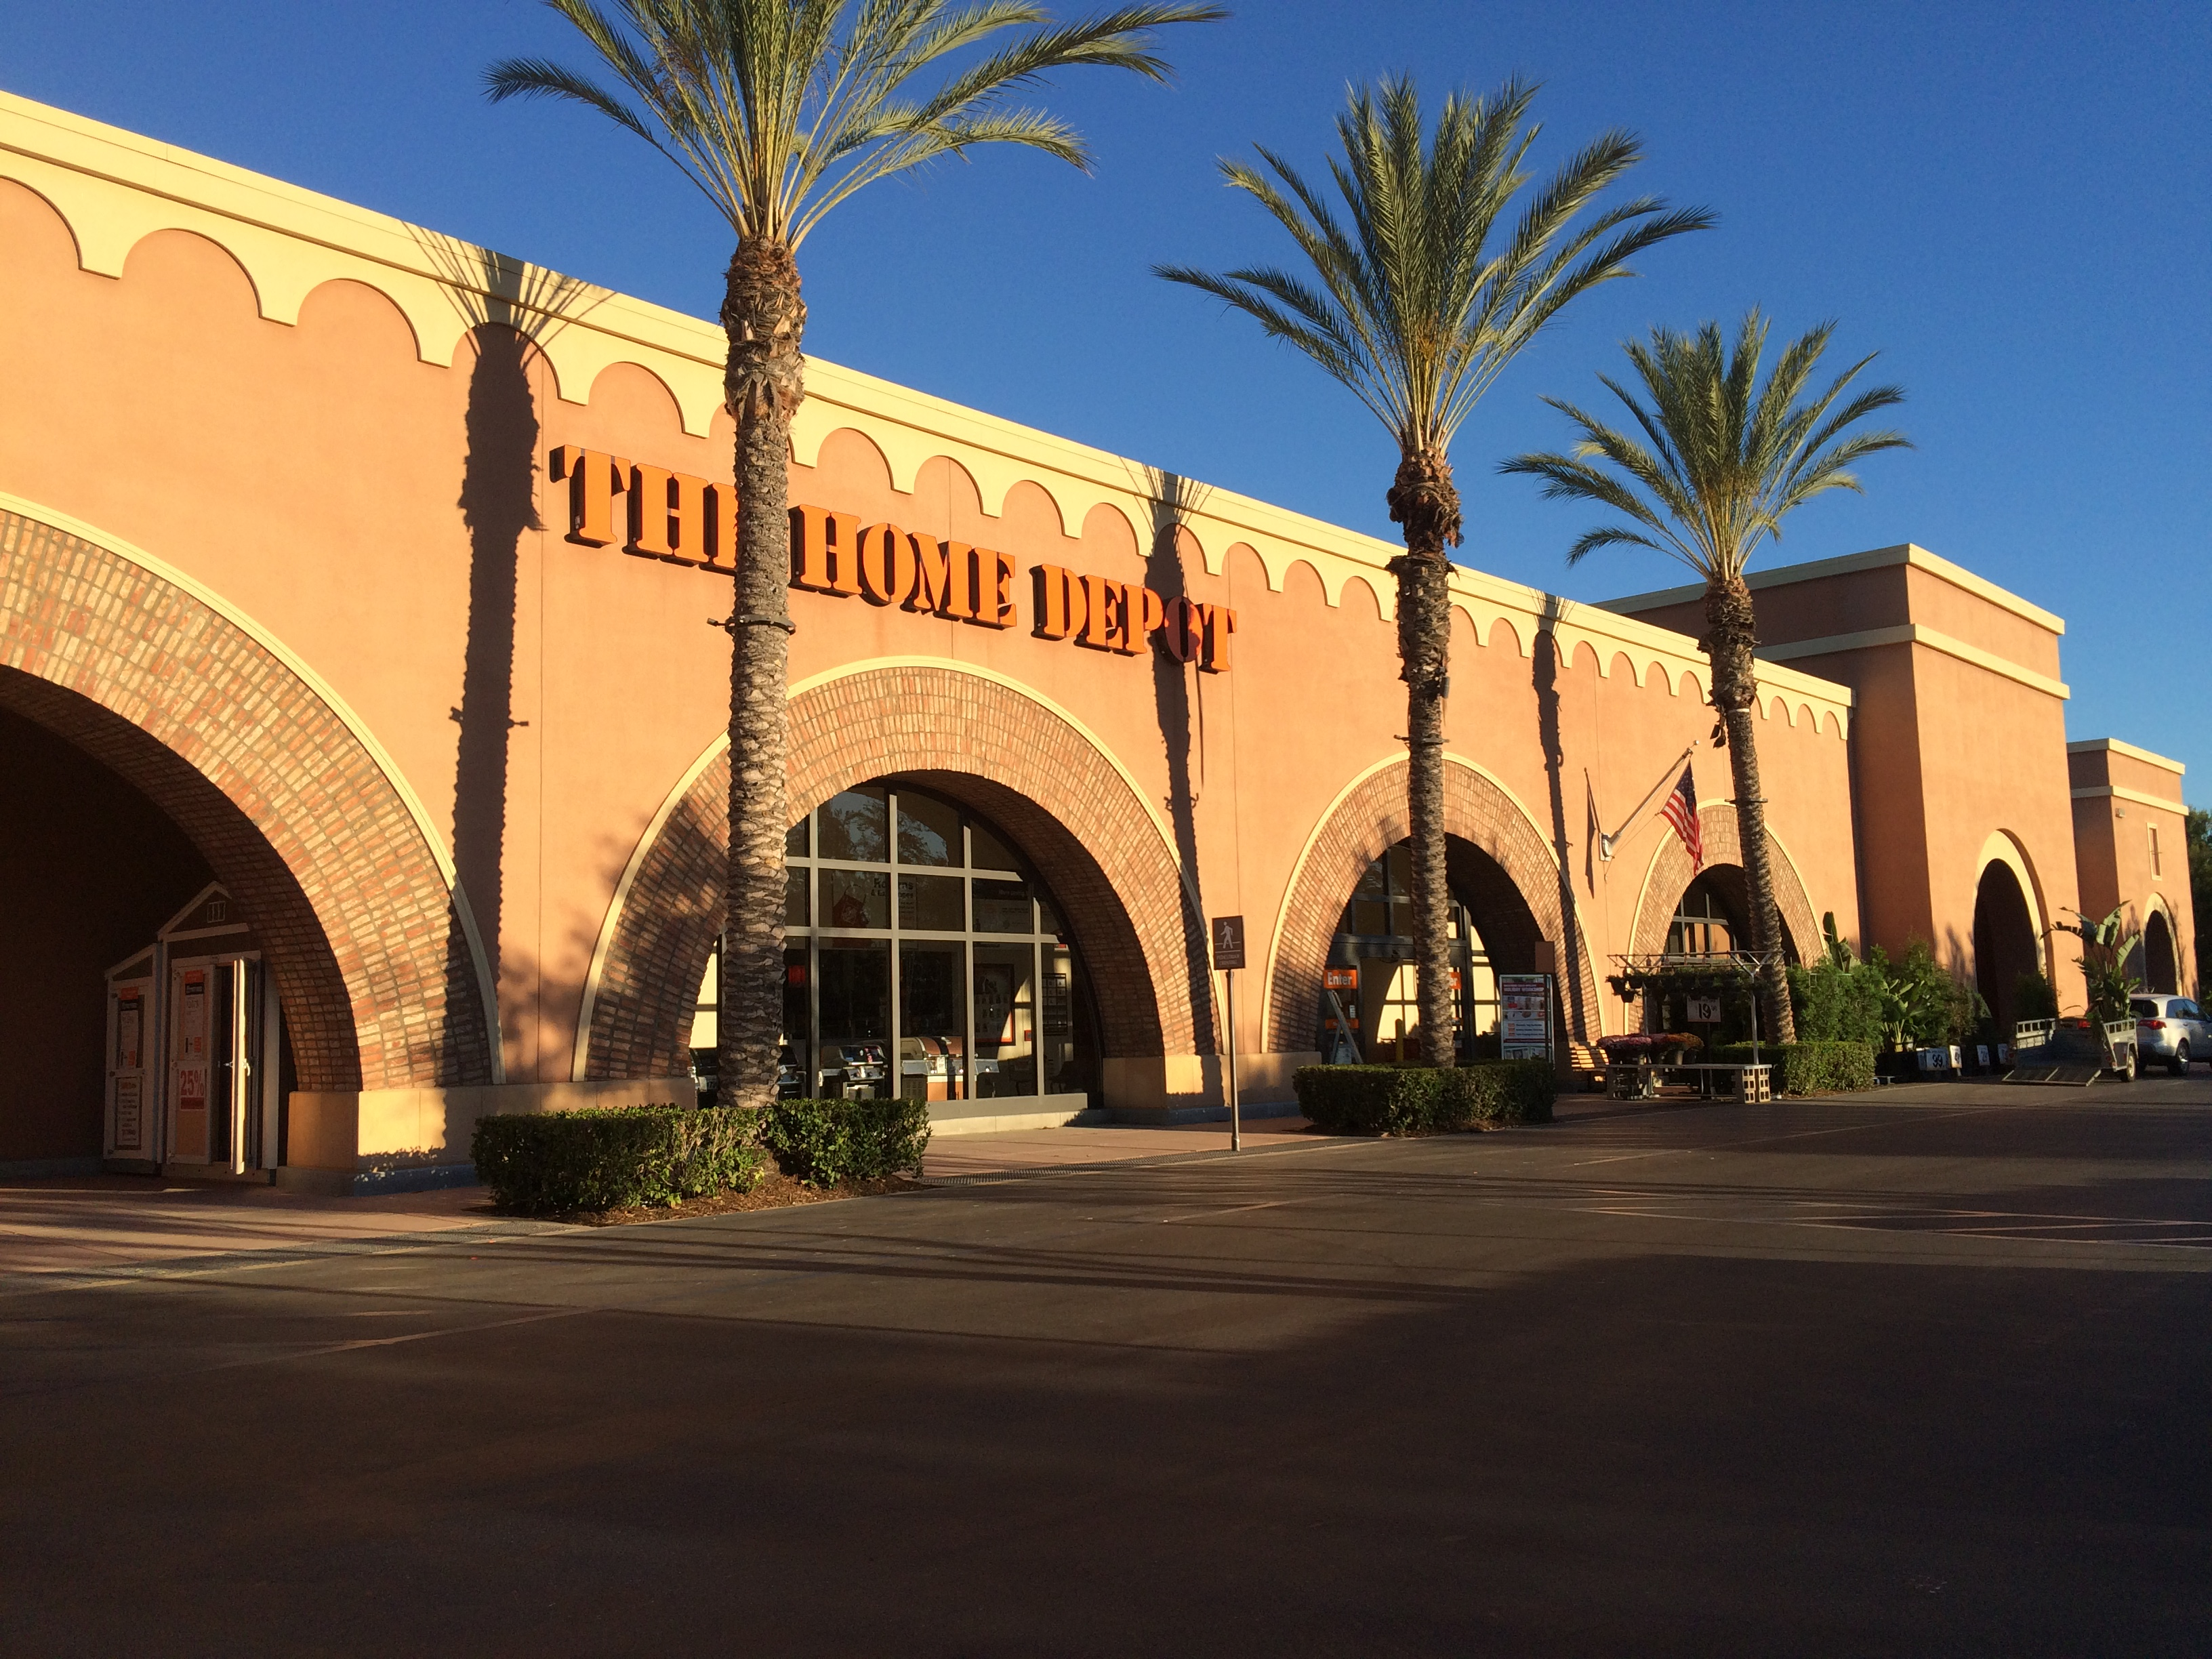 The Home Depot in Irvine, CA, photo #11